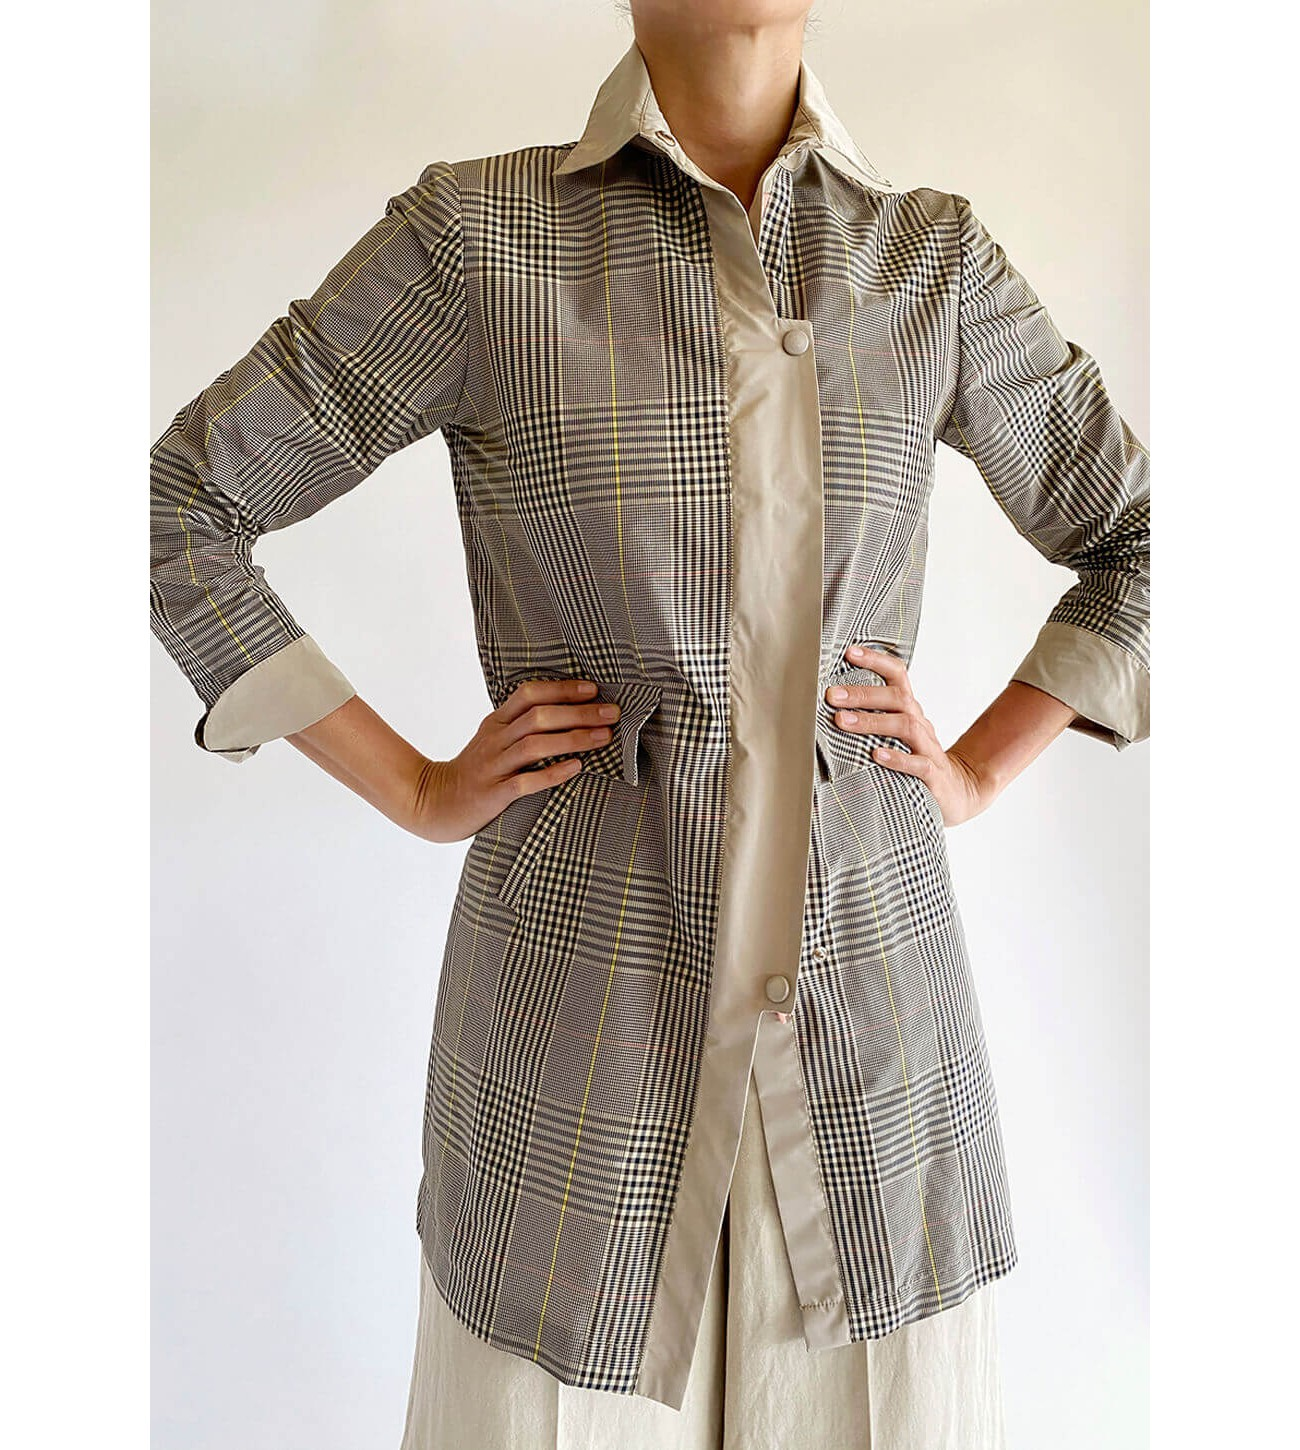 MARIONA_CHECKED_PRINT_TECHNICAL_FABRIC_TRENCH_MARIONA_FASHION_CLOTHING_WOMAN_SHOP_ONLINE_2622